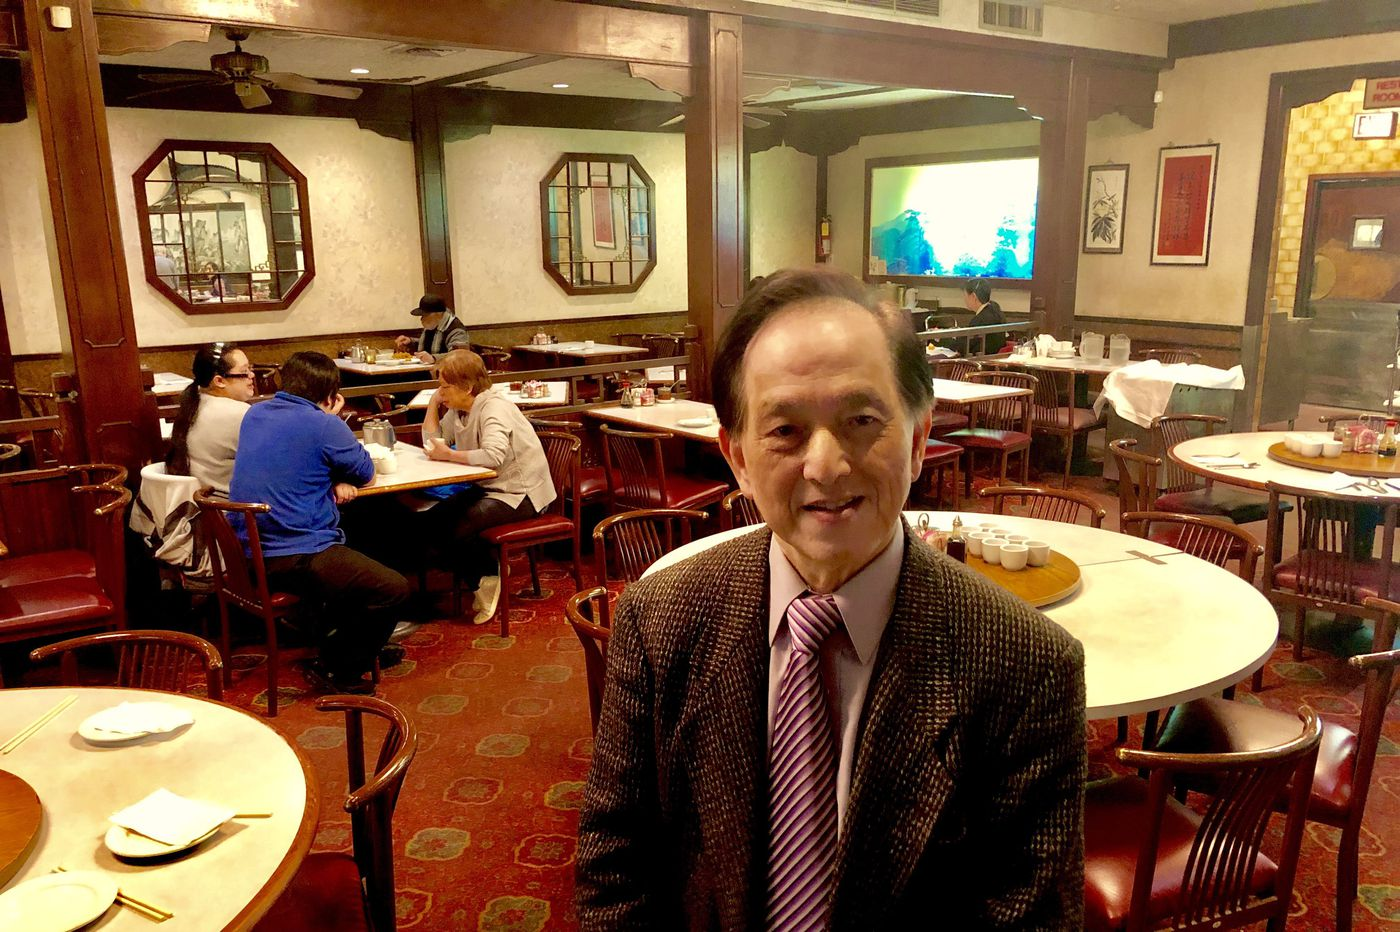 Imperial Inn to close after 45 years in Chinatown